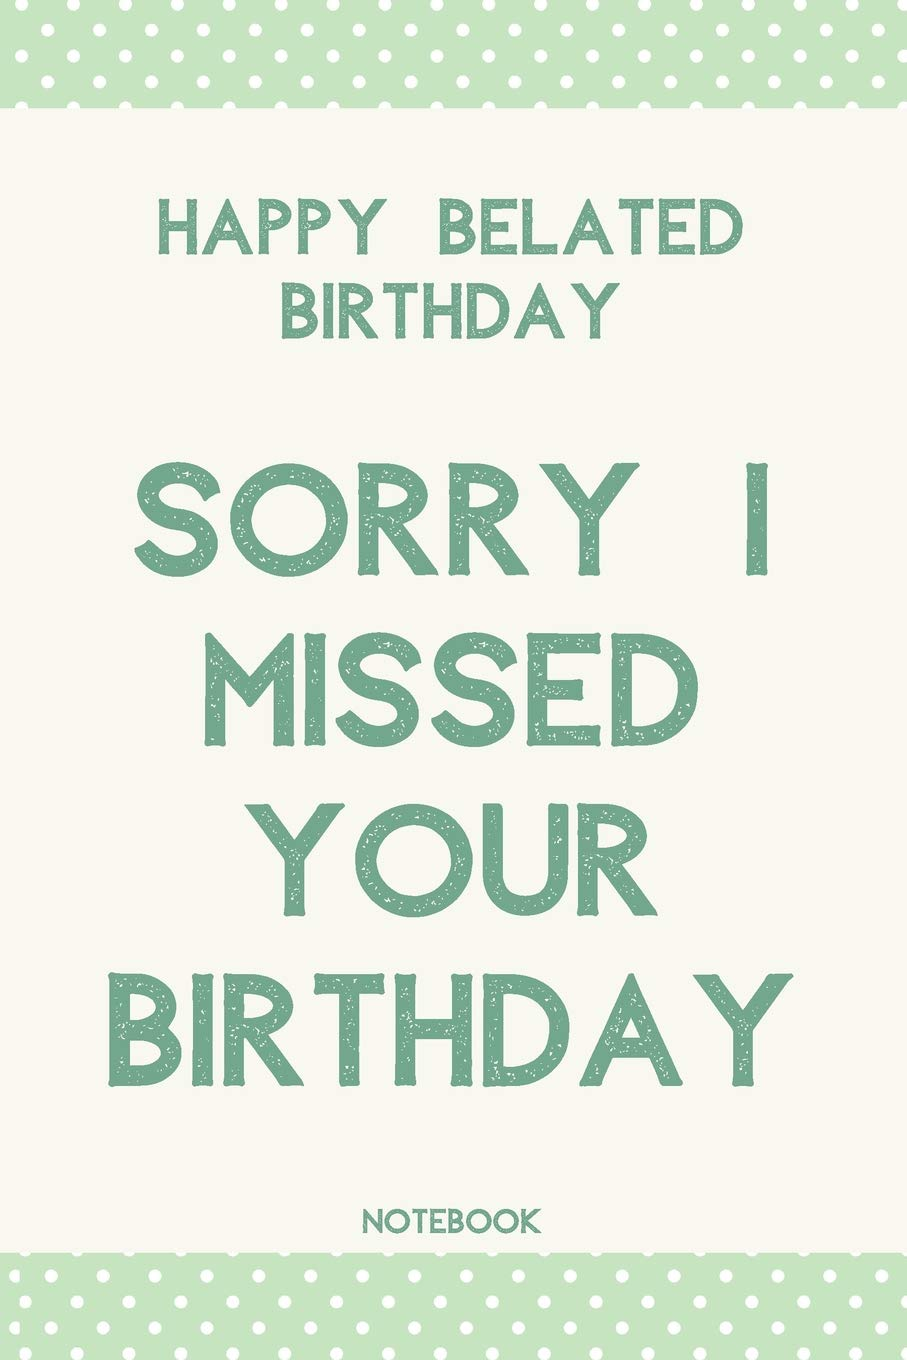 Sorry I Missed Your Birthday Belated Happy Birthday Wishes Journal Gift Blank Lined Notebook Messages Greetings Presents Cards Publishing Gary E Smith 9781070605289 Amazon Com Books